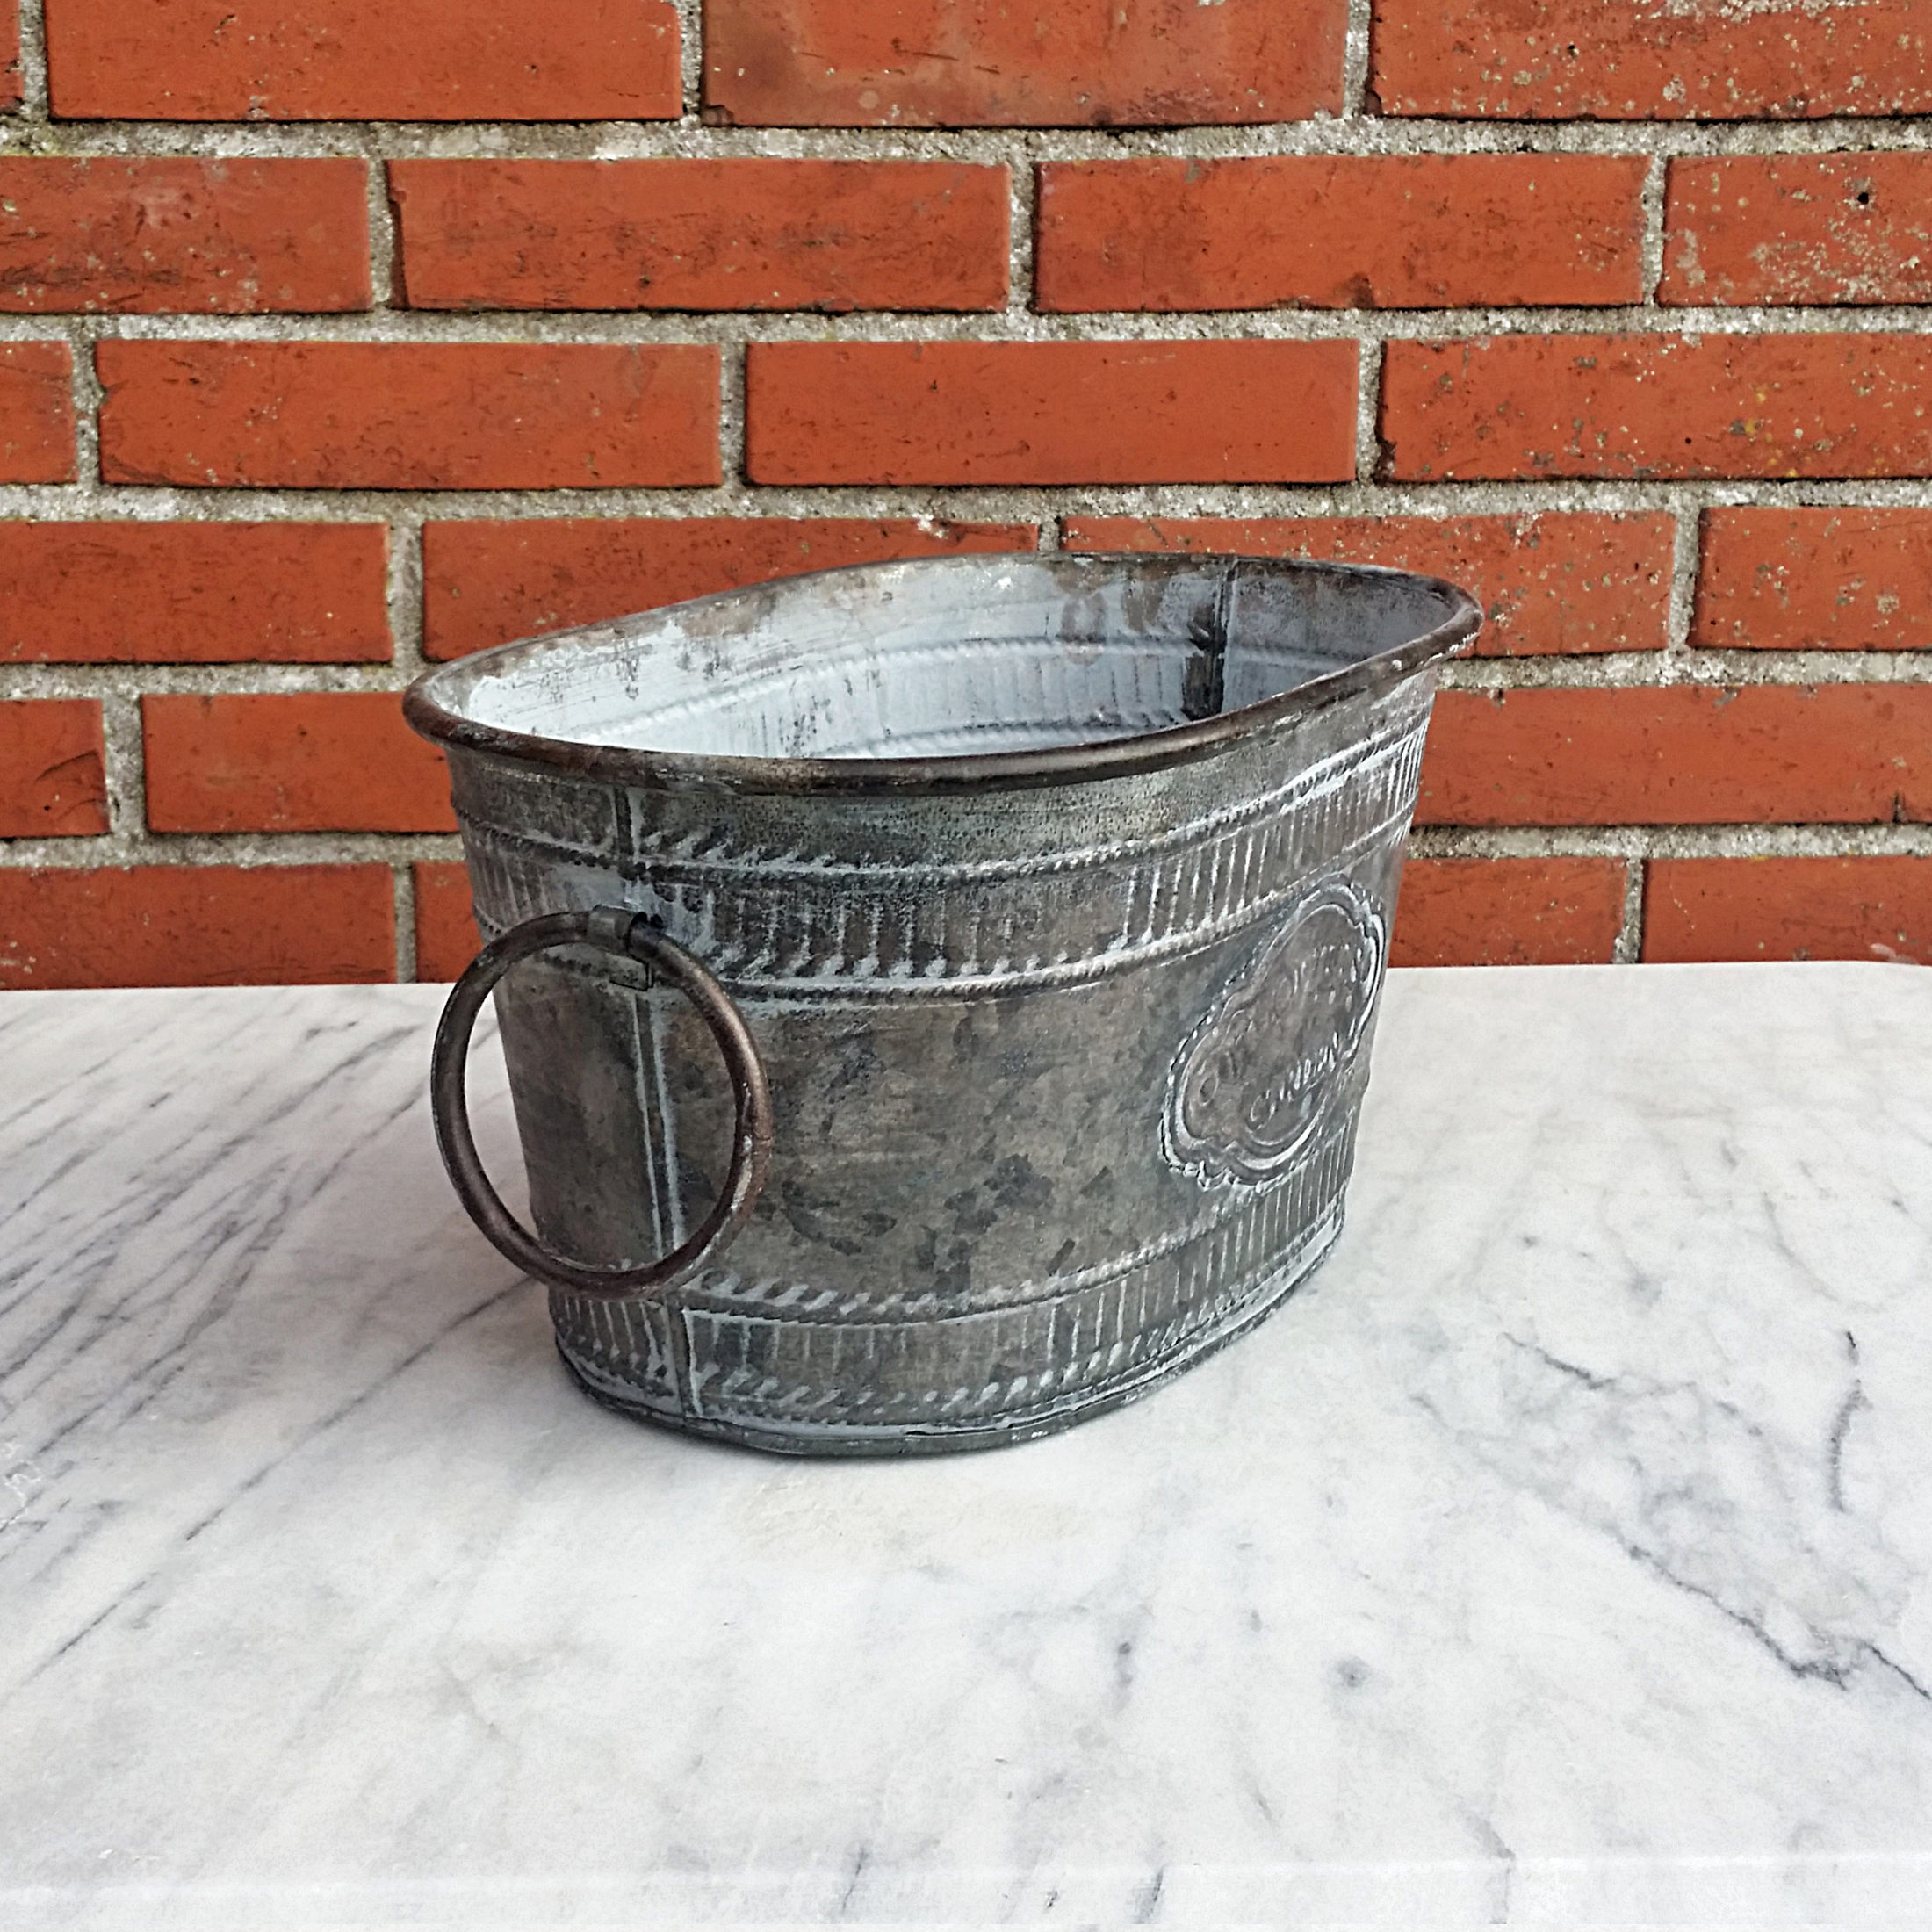 Zinc tub oval 3 sizes pot planter bucket flower pot for Oval tub sizes